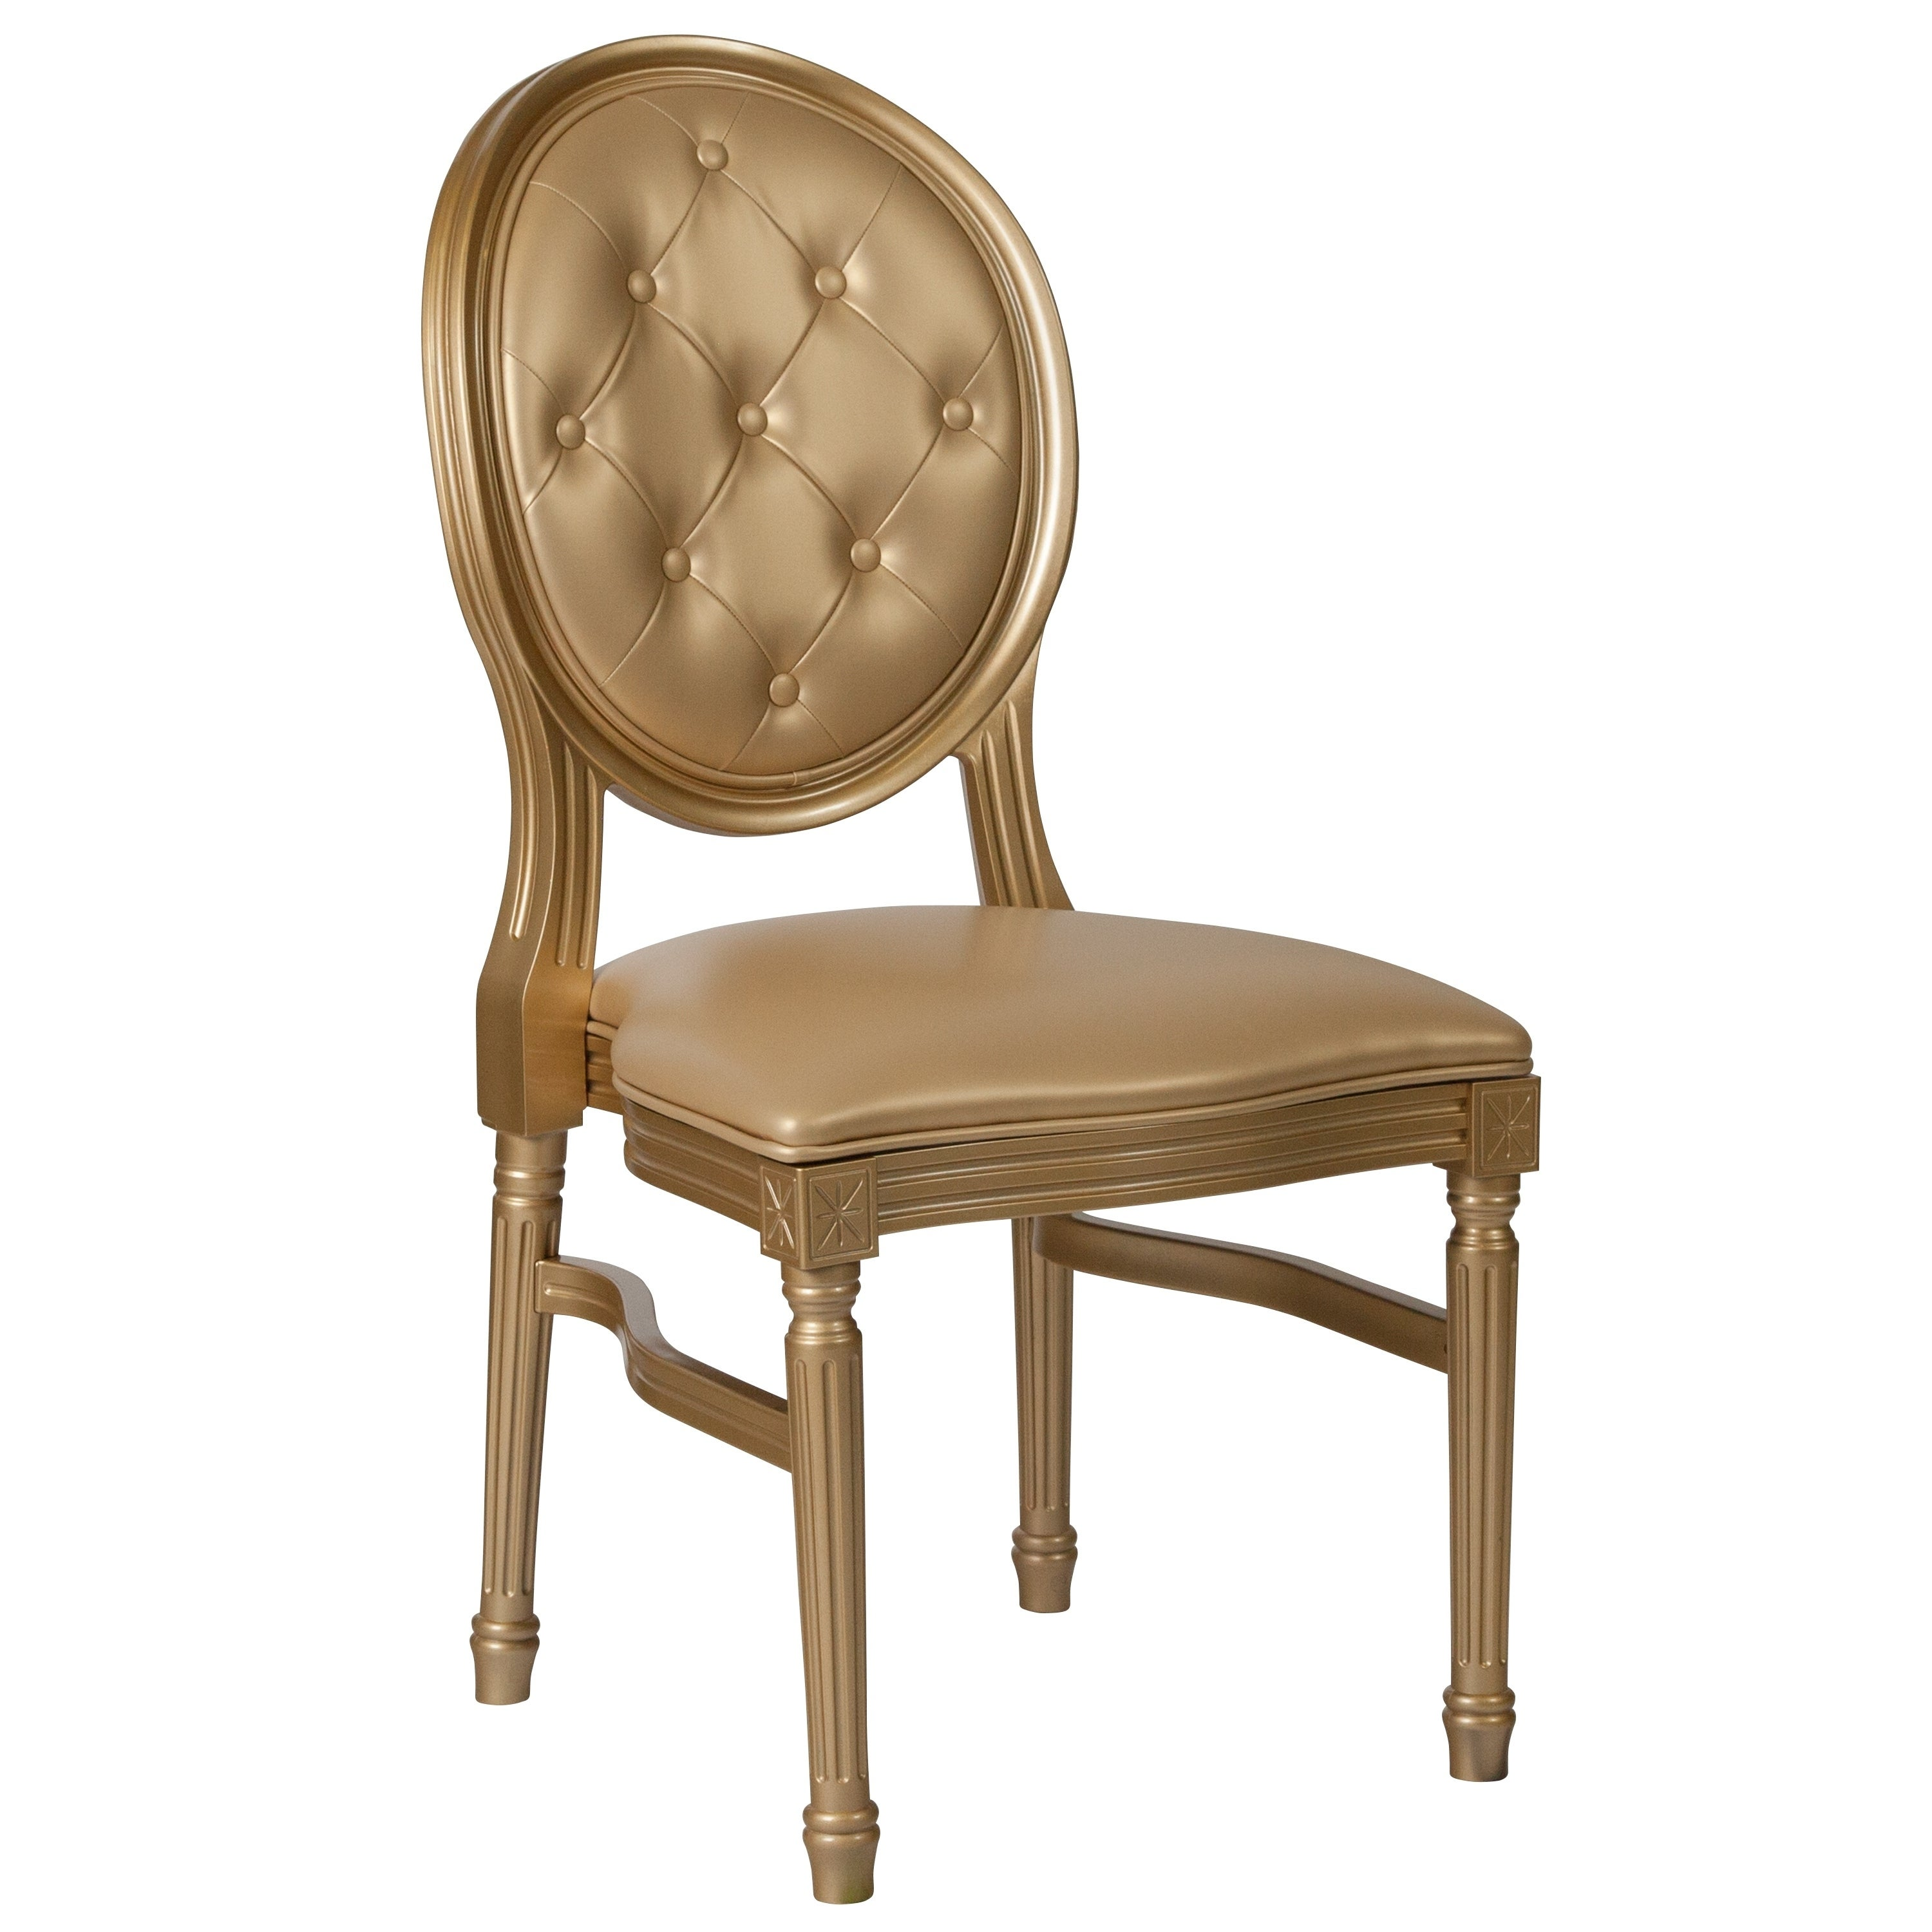 Shop Goleta Round Tufted Back Gold Dining Chair On Sale Free